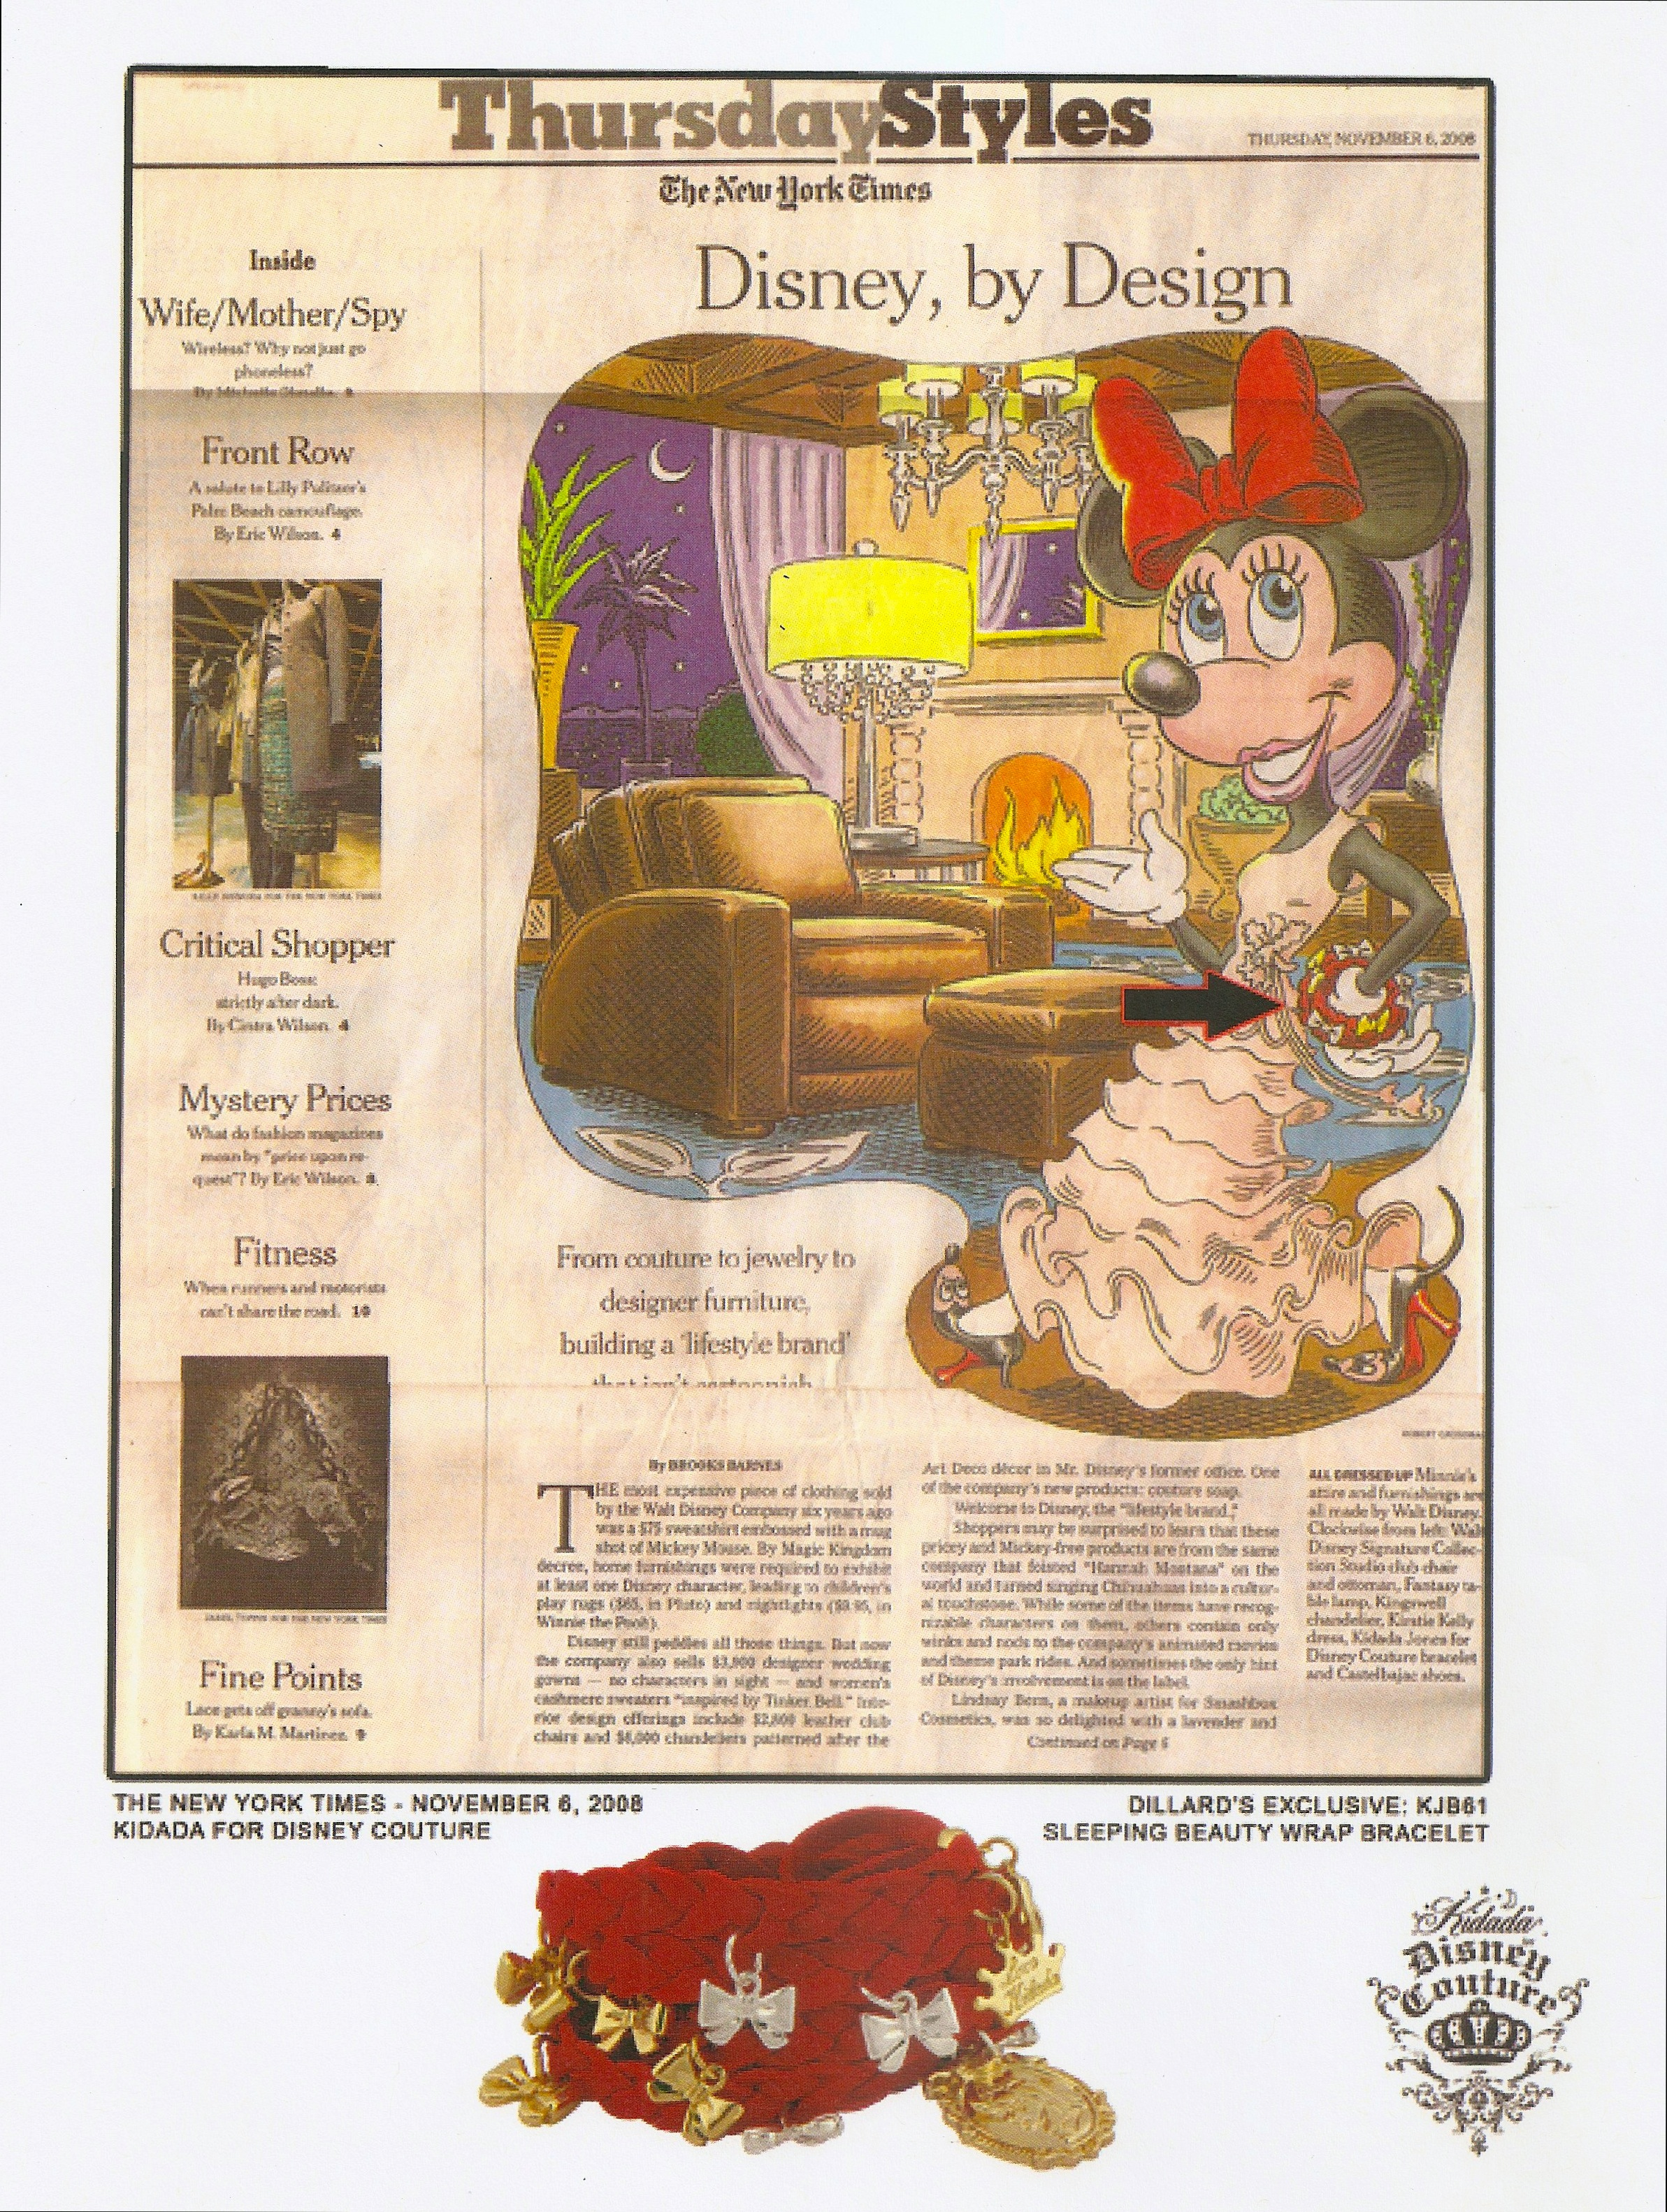 New York Times Style Section Feature on Disney Couture with Mini Mouse wearing a wrap bracelet